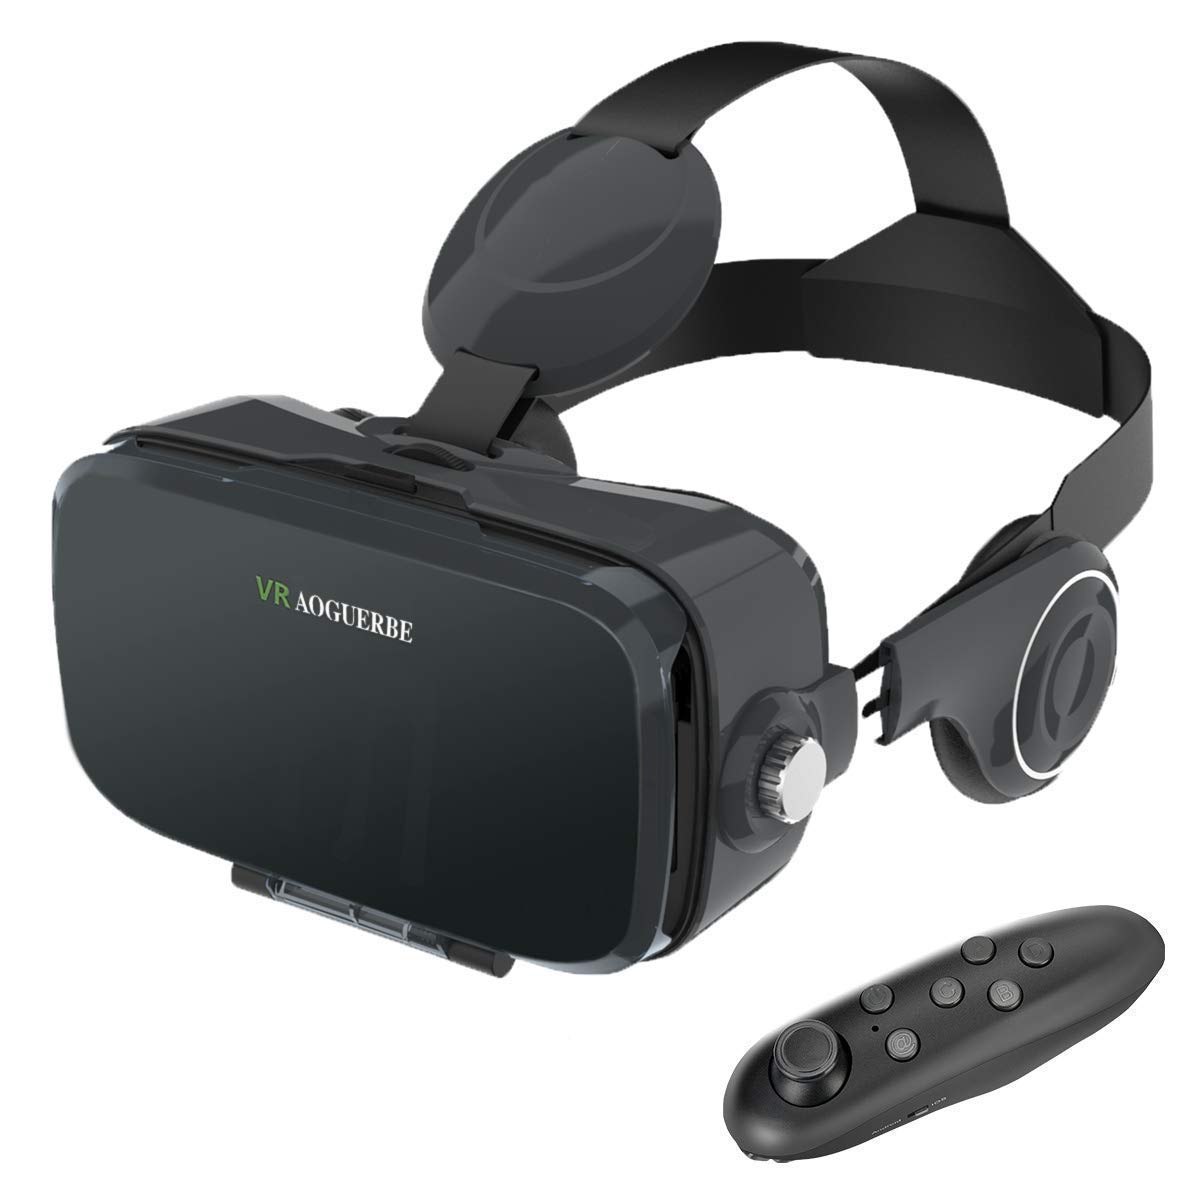 AOGUERBE VR Headset, VR Goggles Box Virtual Reality Headset Bluetooth Controller 3D VR Glasses for TV Movies Video Games with iPhone Xs XR X 8 7 6/Plus, for Samsung s9 s8 s6 4.0-6.0 in Screen - Black by AOGUERBE